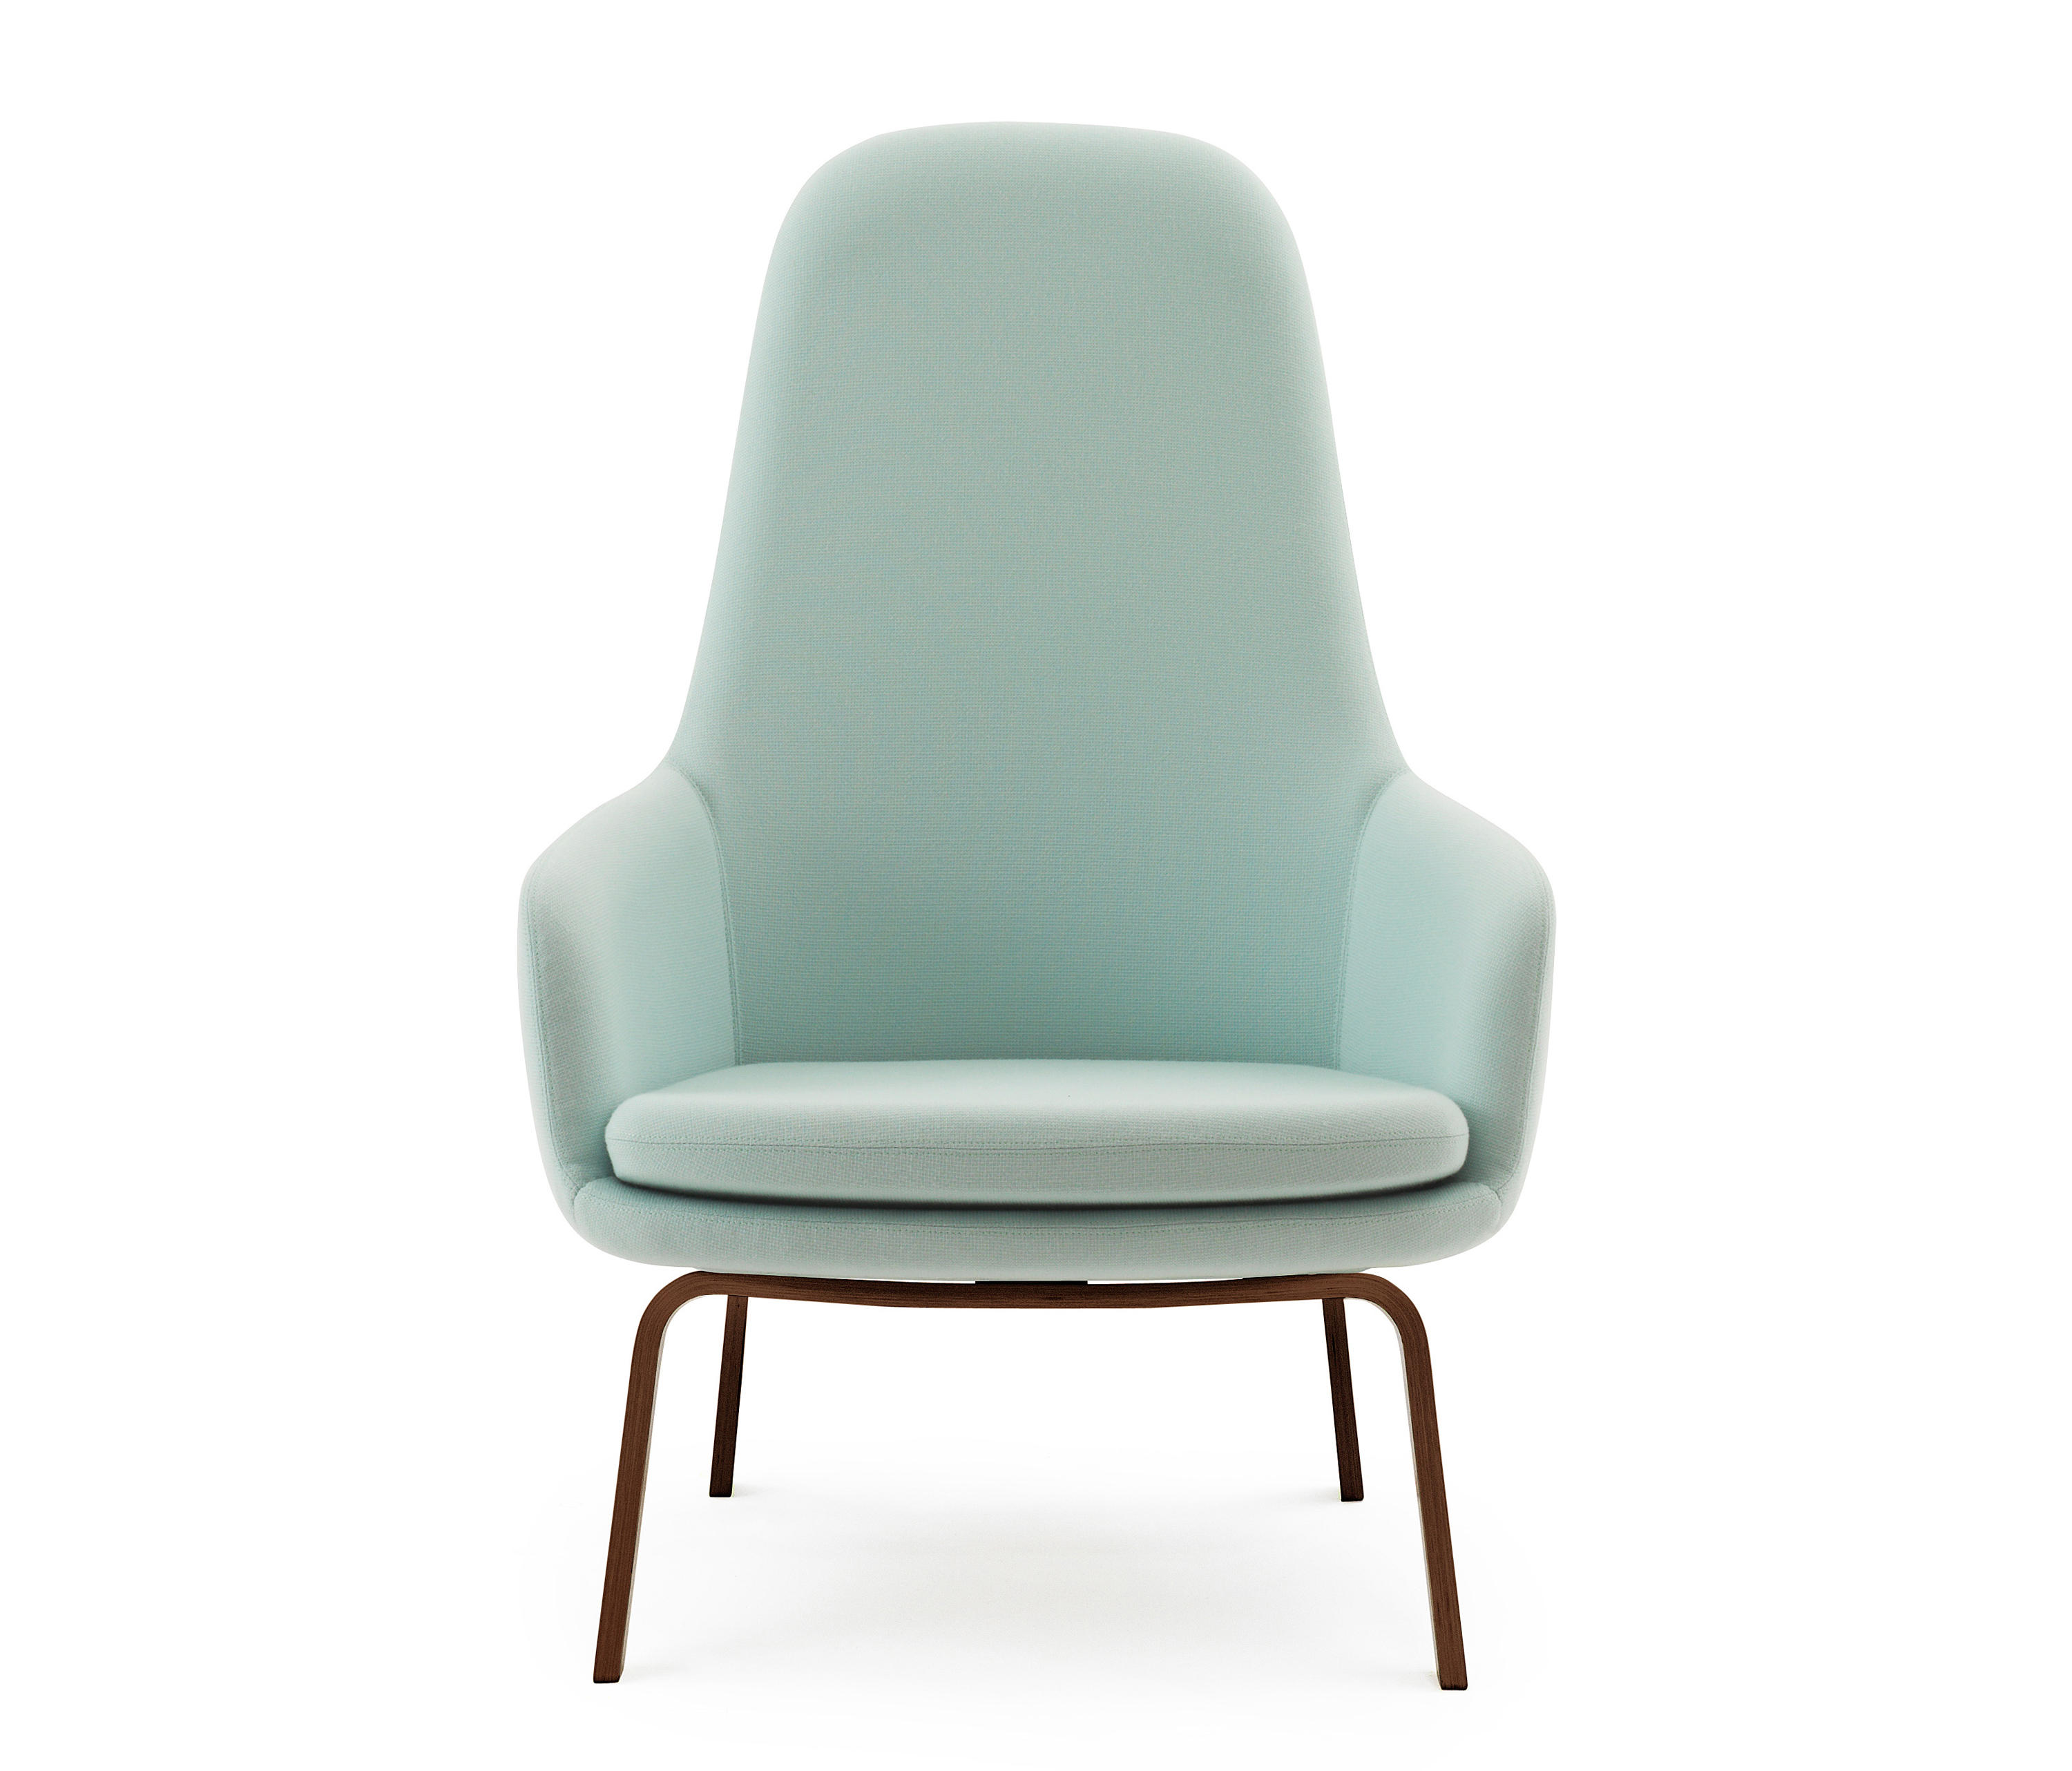 ERA LOUNGE CHAIR HIGH Lounge Chairs From Normann Copenhagen Architonic